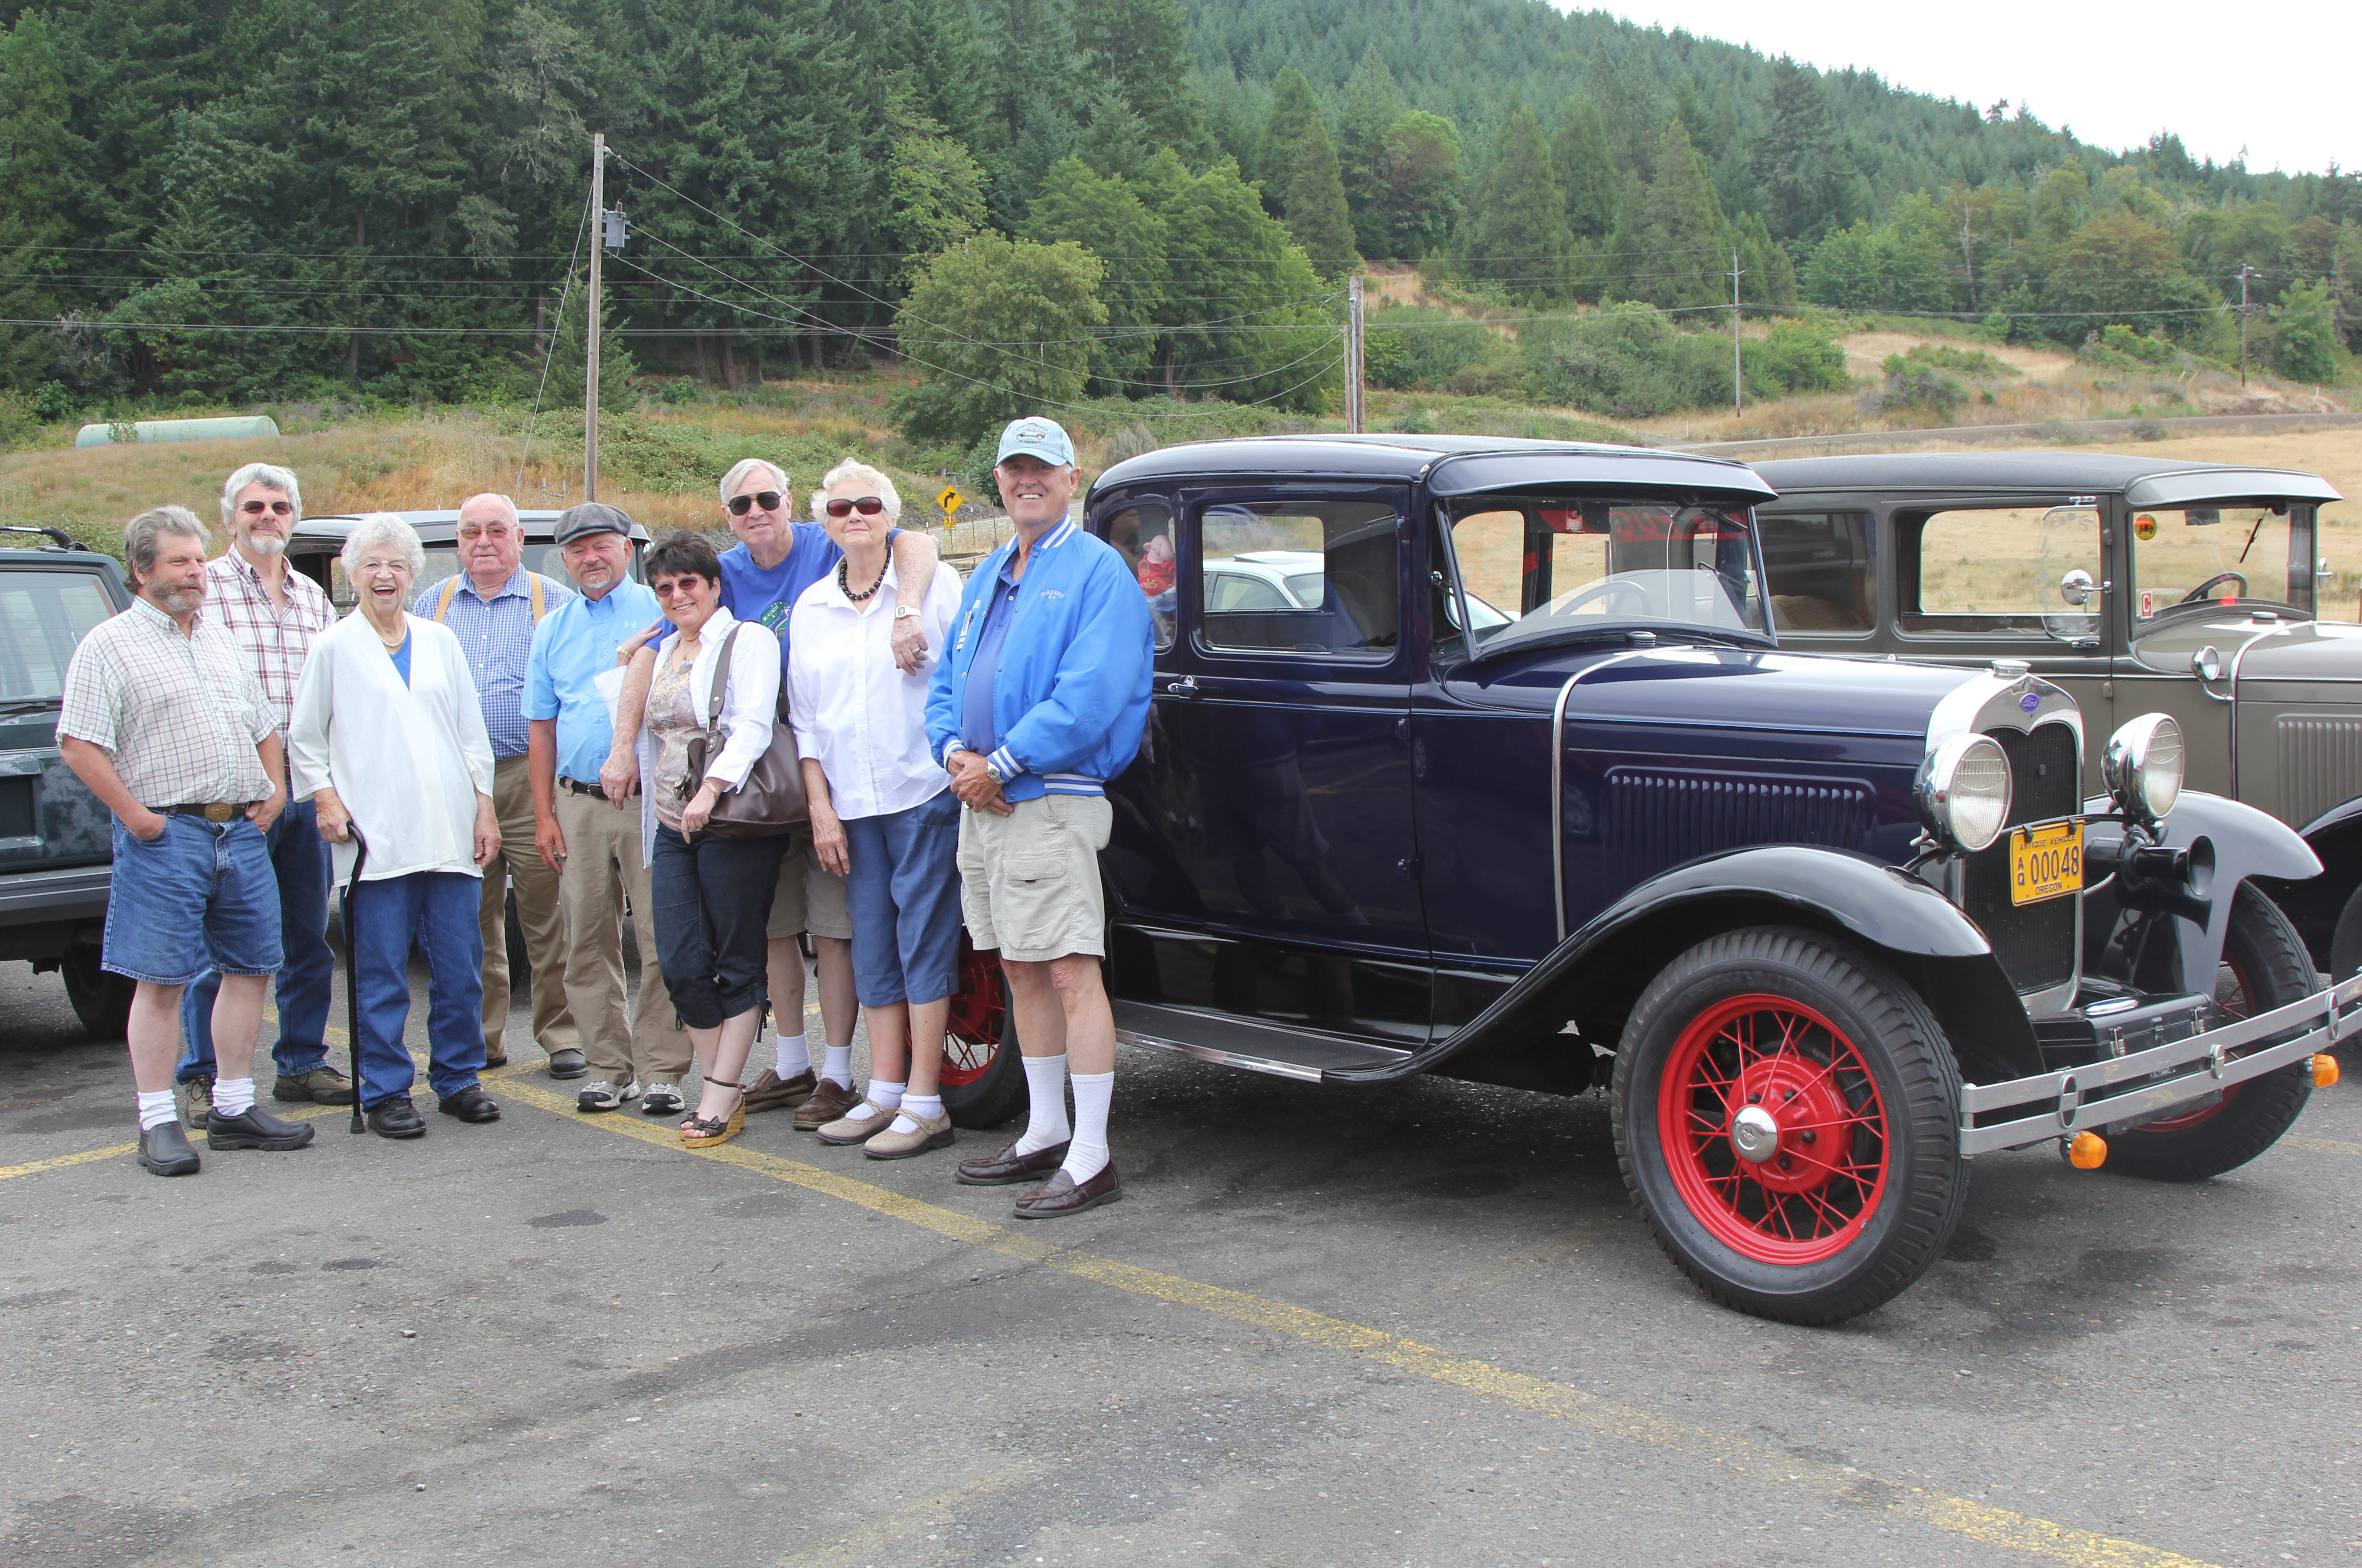 On California's I-5 southbound lane, we ran into a Model A club on a road trip of their own. It's amazing to realize that 80 years ago, a production street car would be pushing it to get to 60 mph, and now you can buy a family car that can do 200 mph.